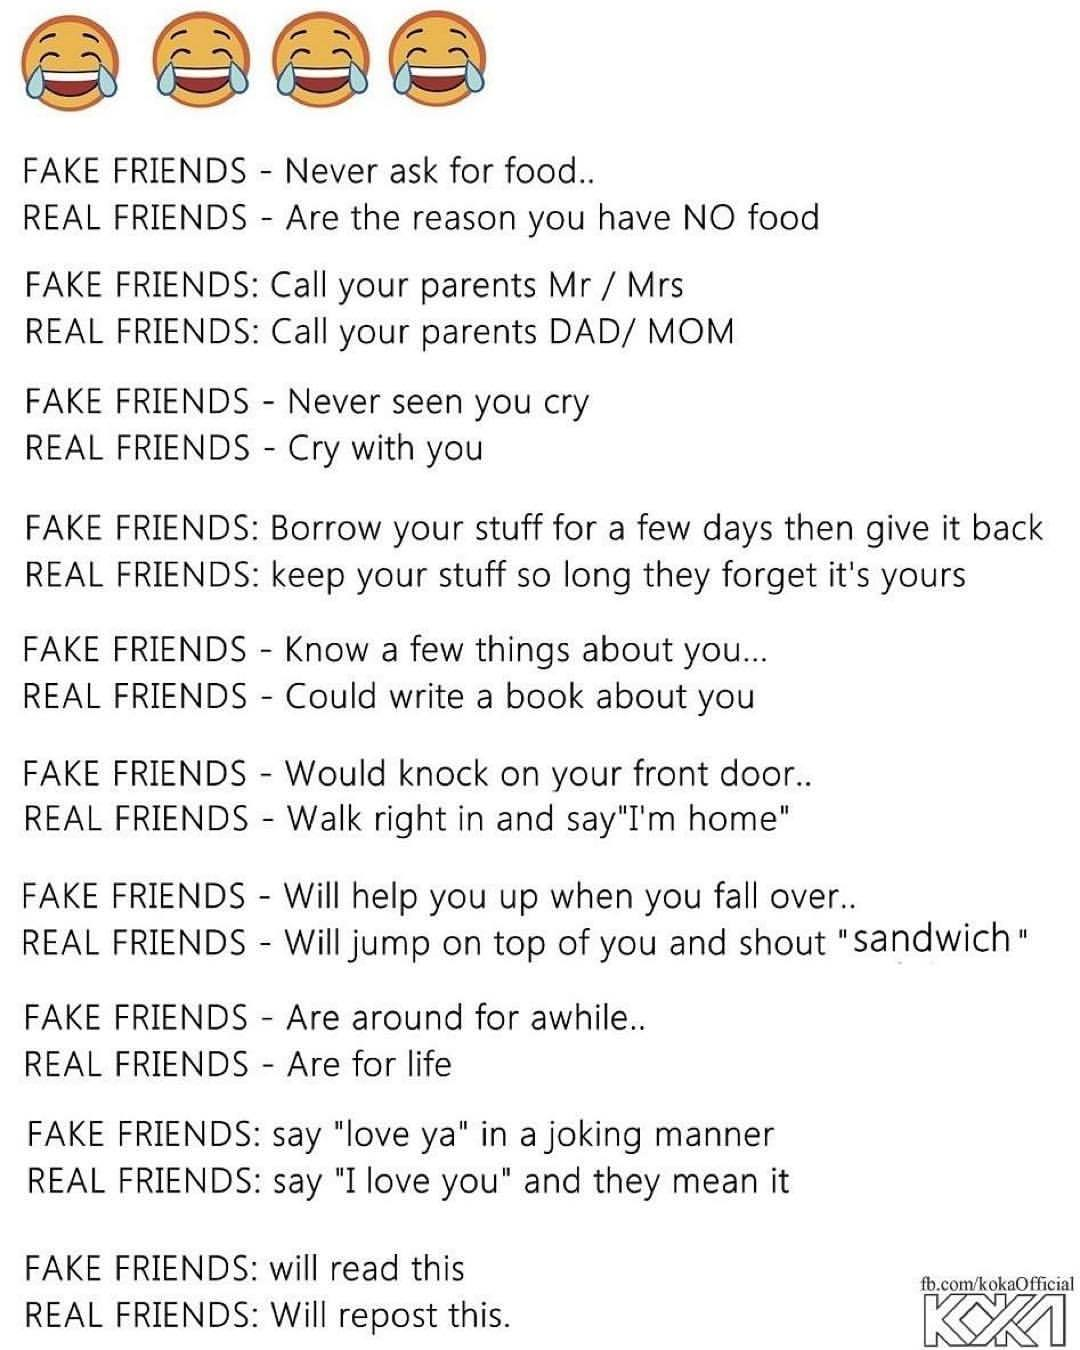 Fake Friends, Real Friends